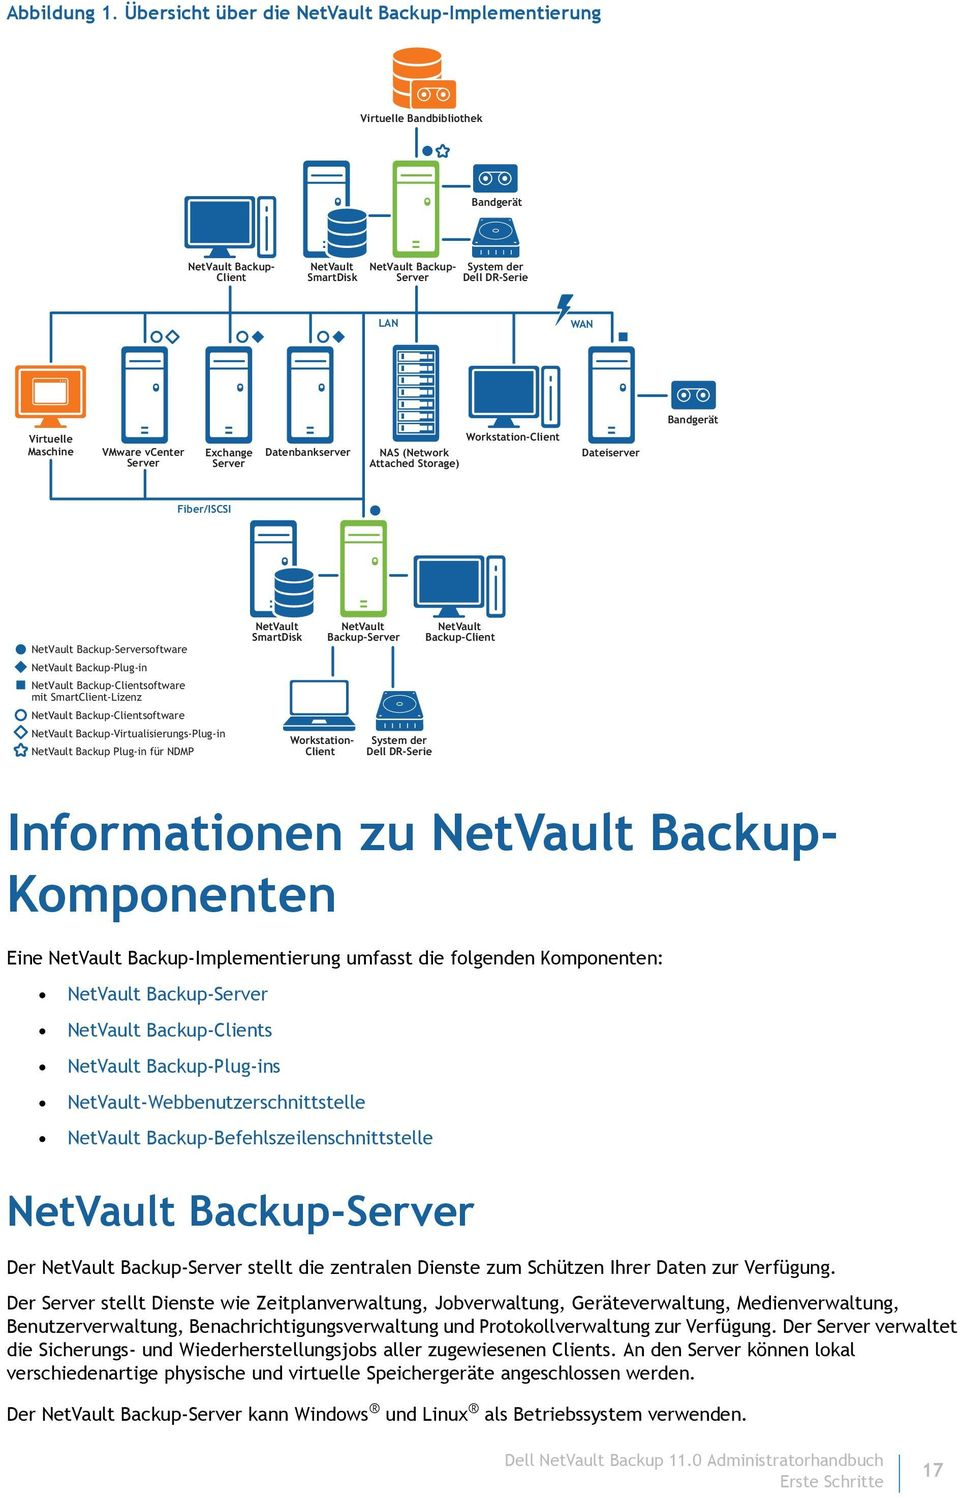 Virtuelle Maschine VMware vcenter Server Exchange Server Datenbankserver NAS (Network Attached Storage) Workstation-Client Dateiserver Fiber/ISCSI NetVault Backup-Serversoftware NetVault